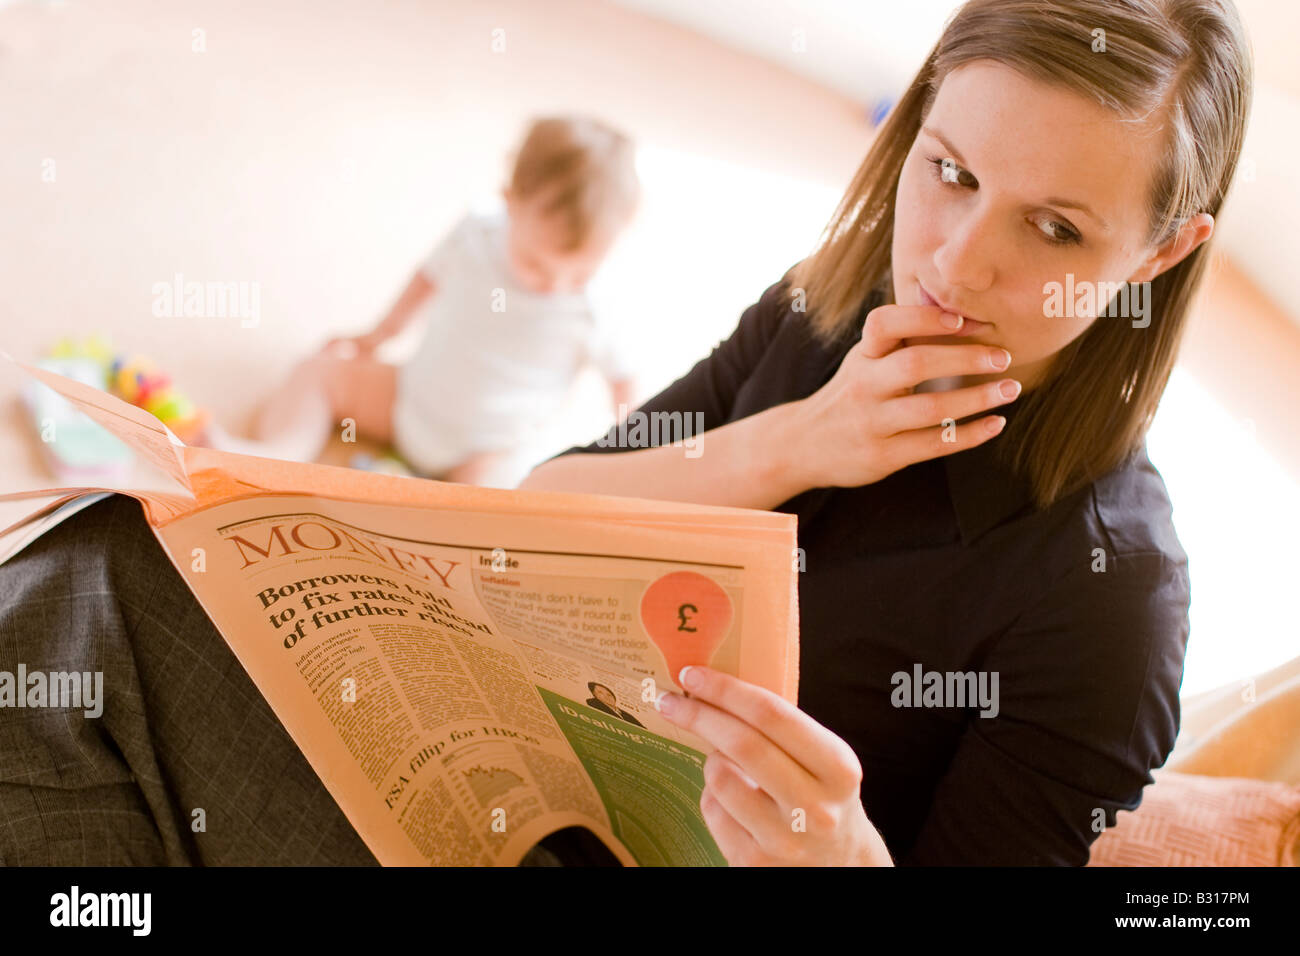 mother looking at worrying financial news in the paper with baby in the background - Stock Image